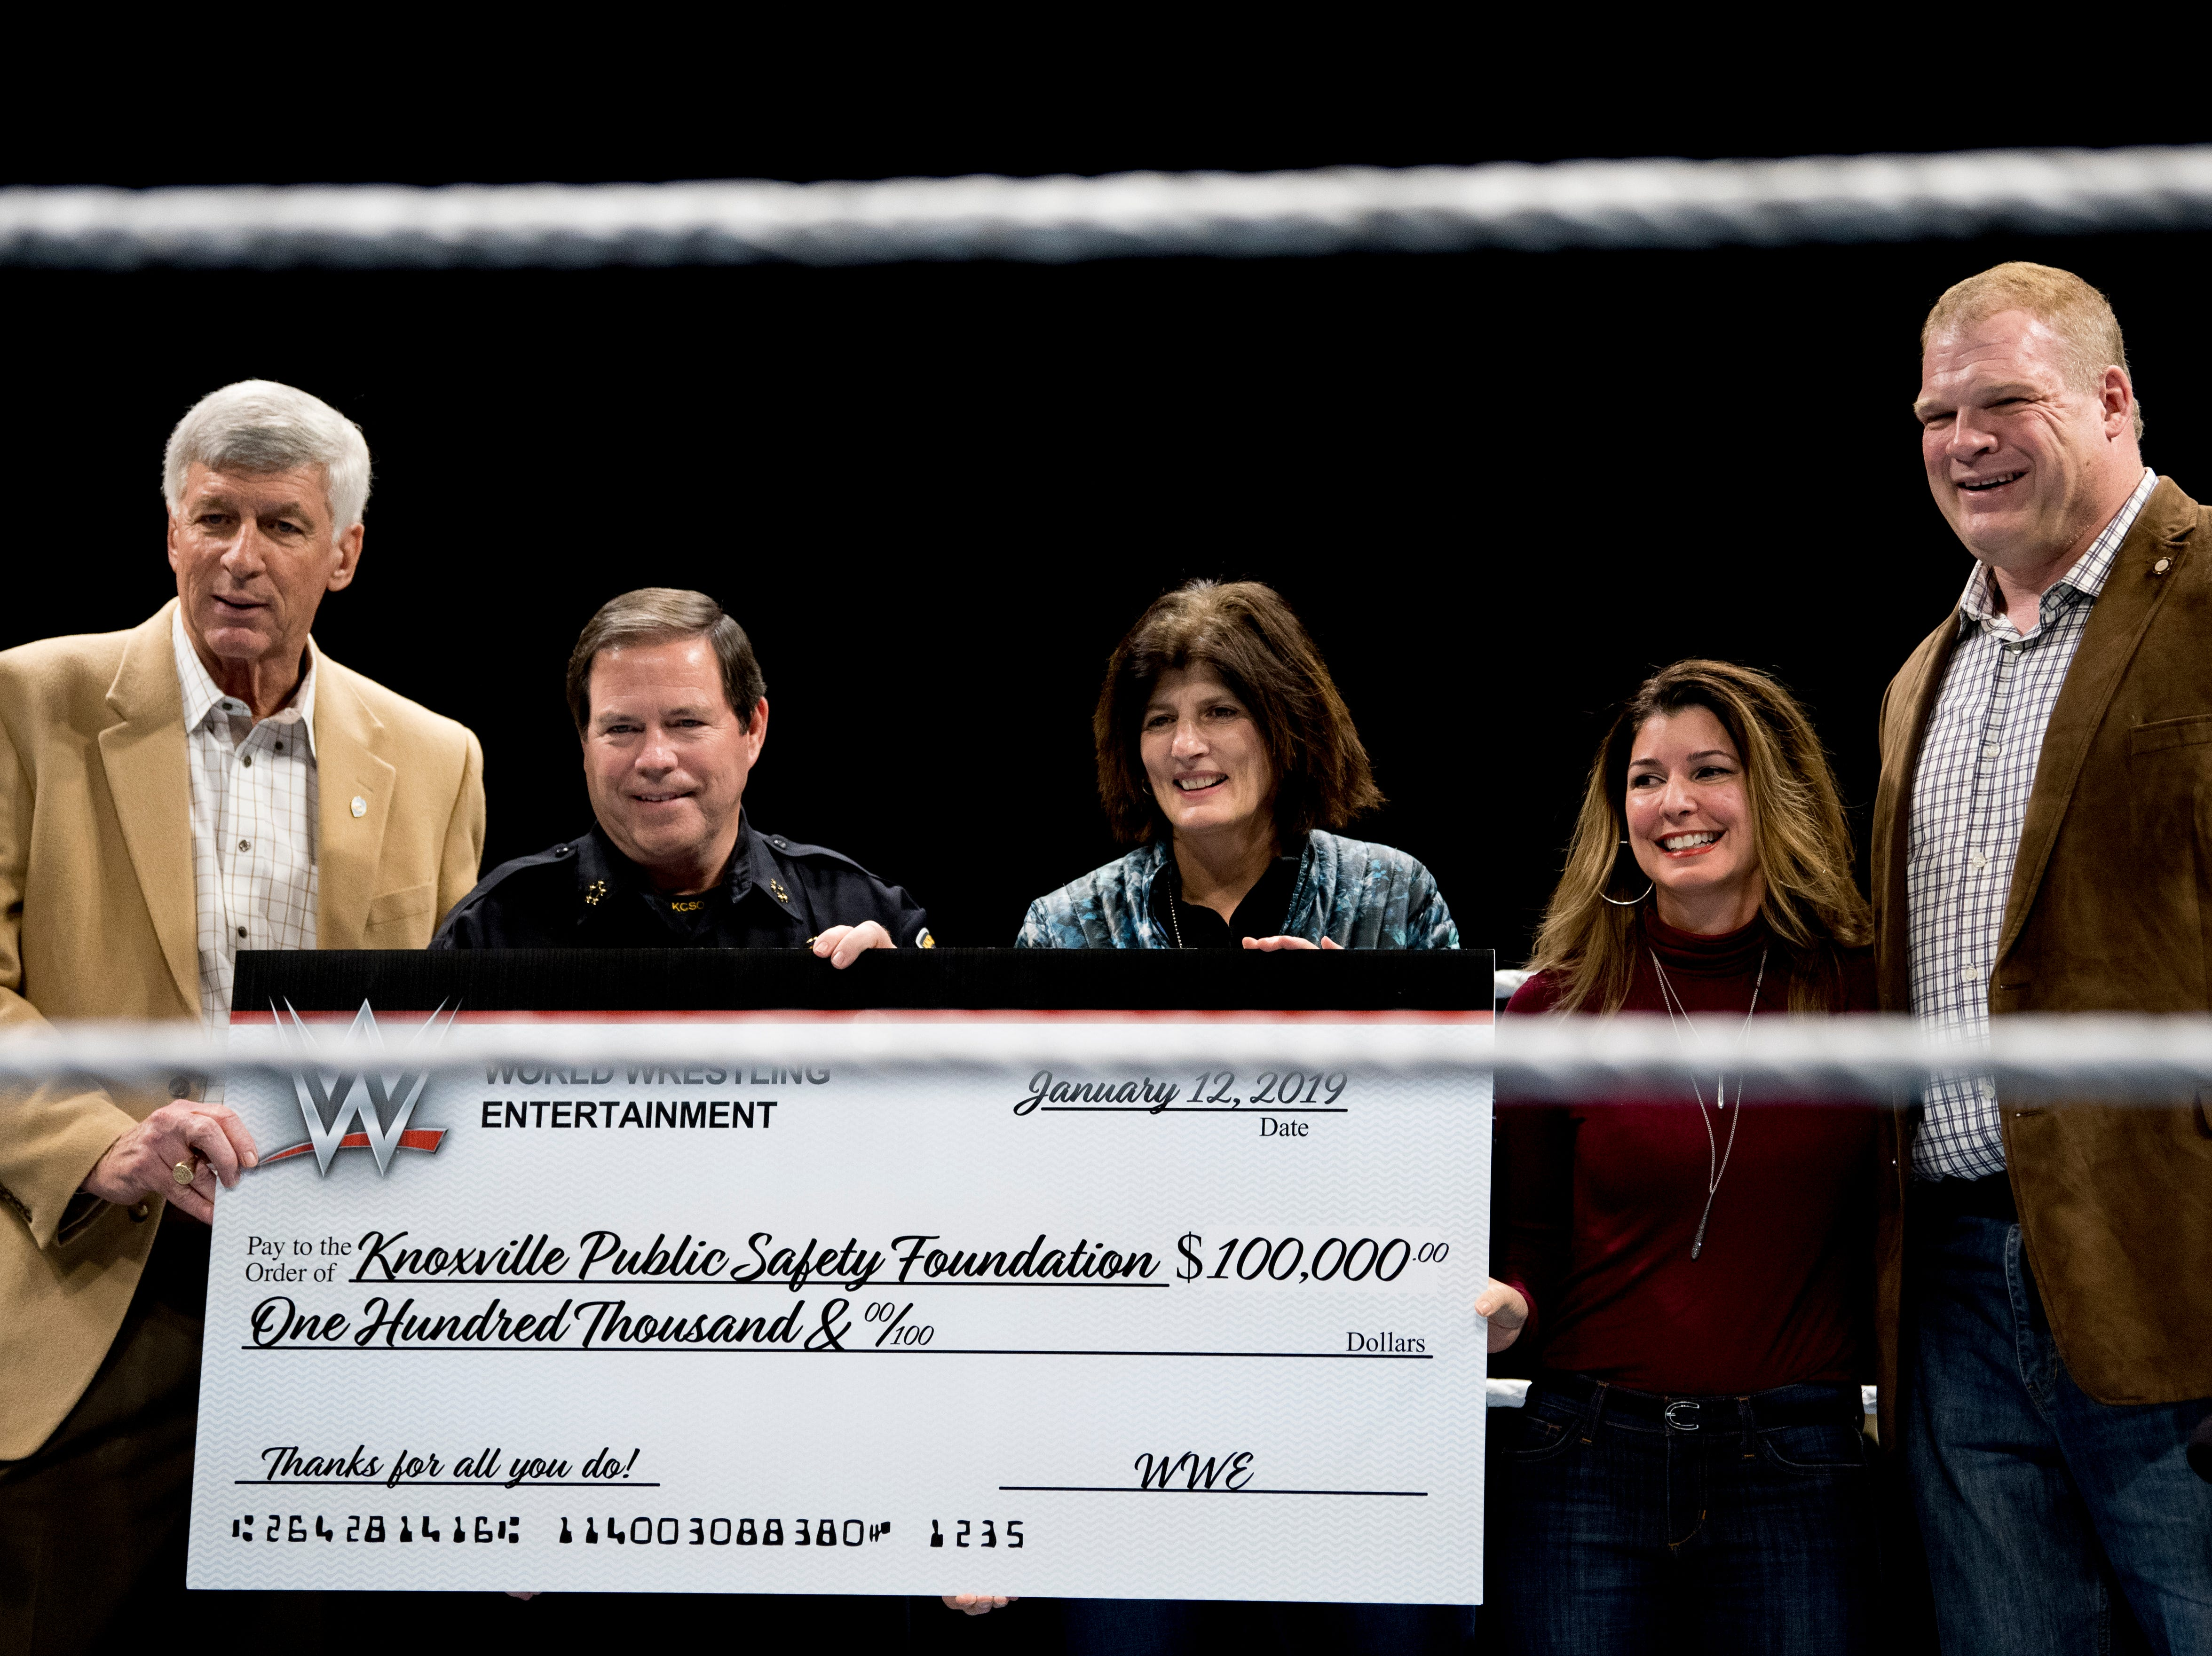 Knox County Mayor Glenn Jacobs, aka WWE wrestler Kane, presents a check to the Knoxville Public Safety Foundation during a WWE Live performance at the Knoxville Civic Coliseum in Knoxville, Tennessee on Saturday, January 12, 2019. *KNOXVILLE NEWS SENTINEL USE ONLY*